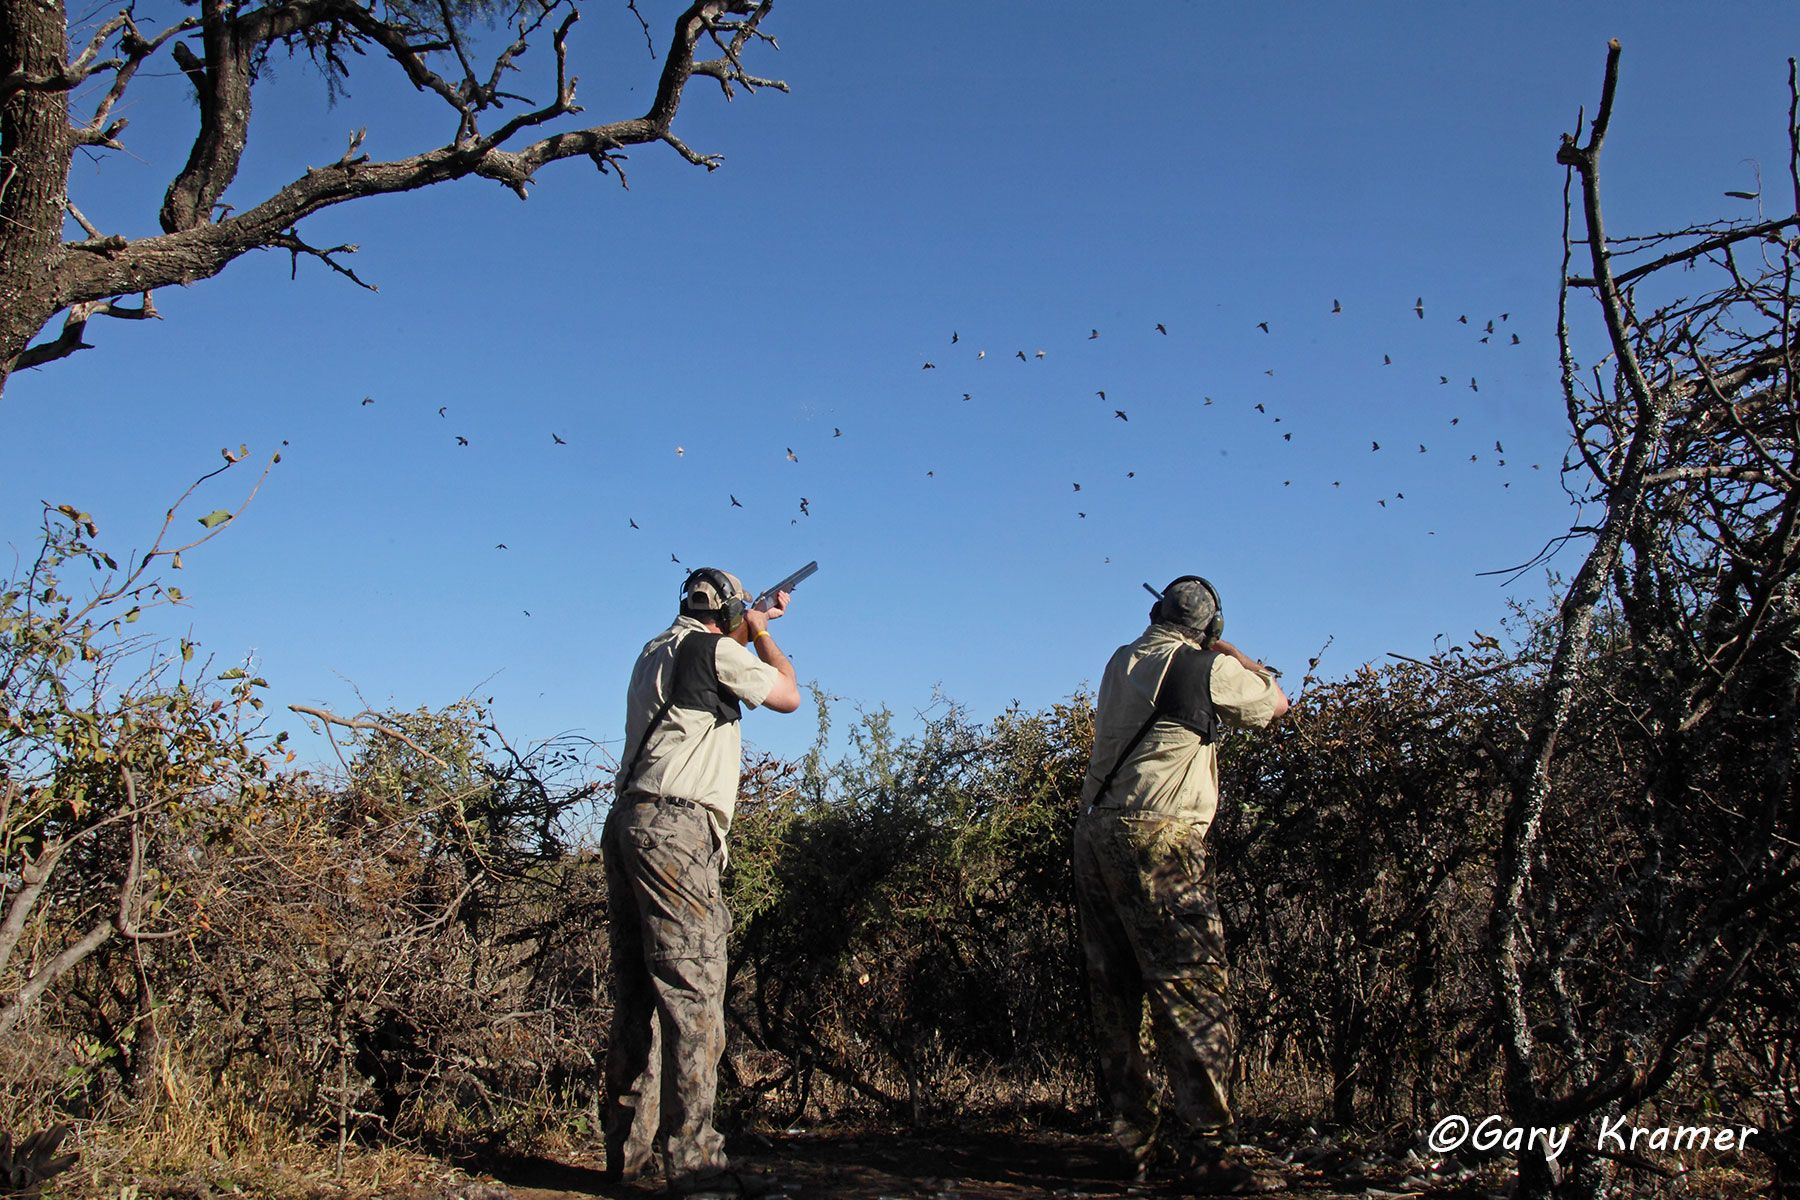 Hunter(s) shooting at Eared Dove, Argentina - SHds#899d